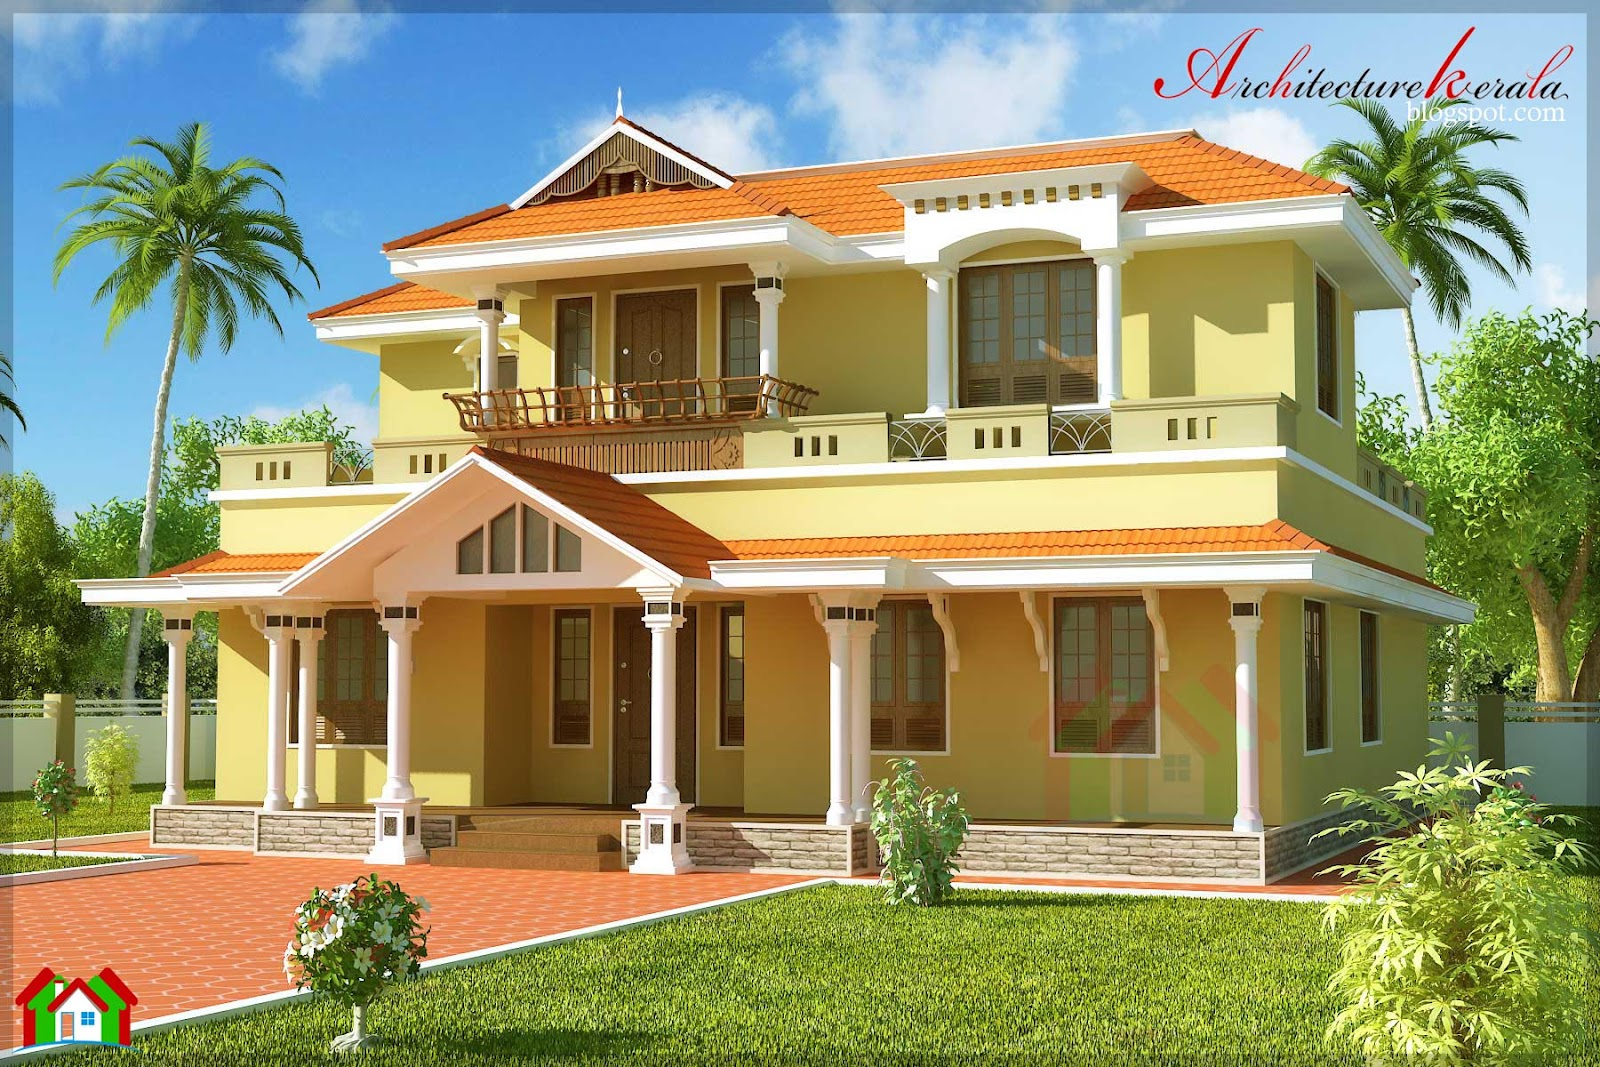 Architecture kerala 2500 square feet traditional style for Home designs kerala architects